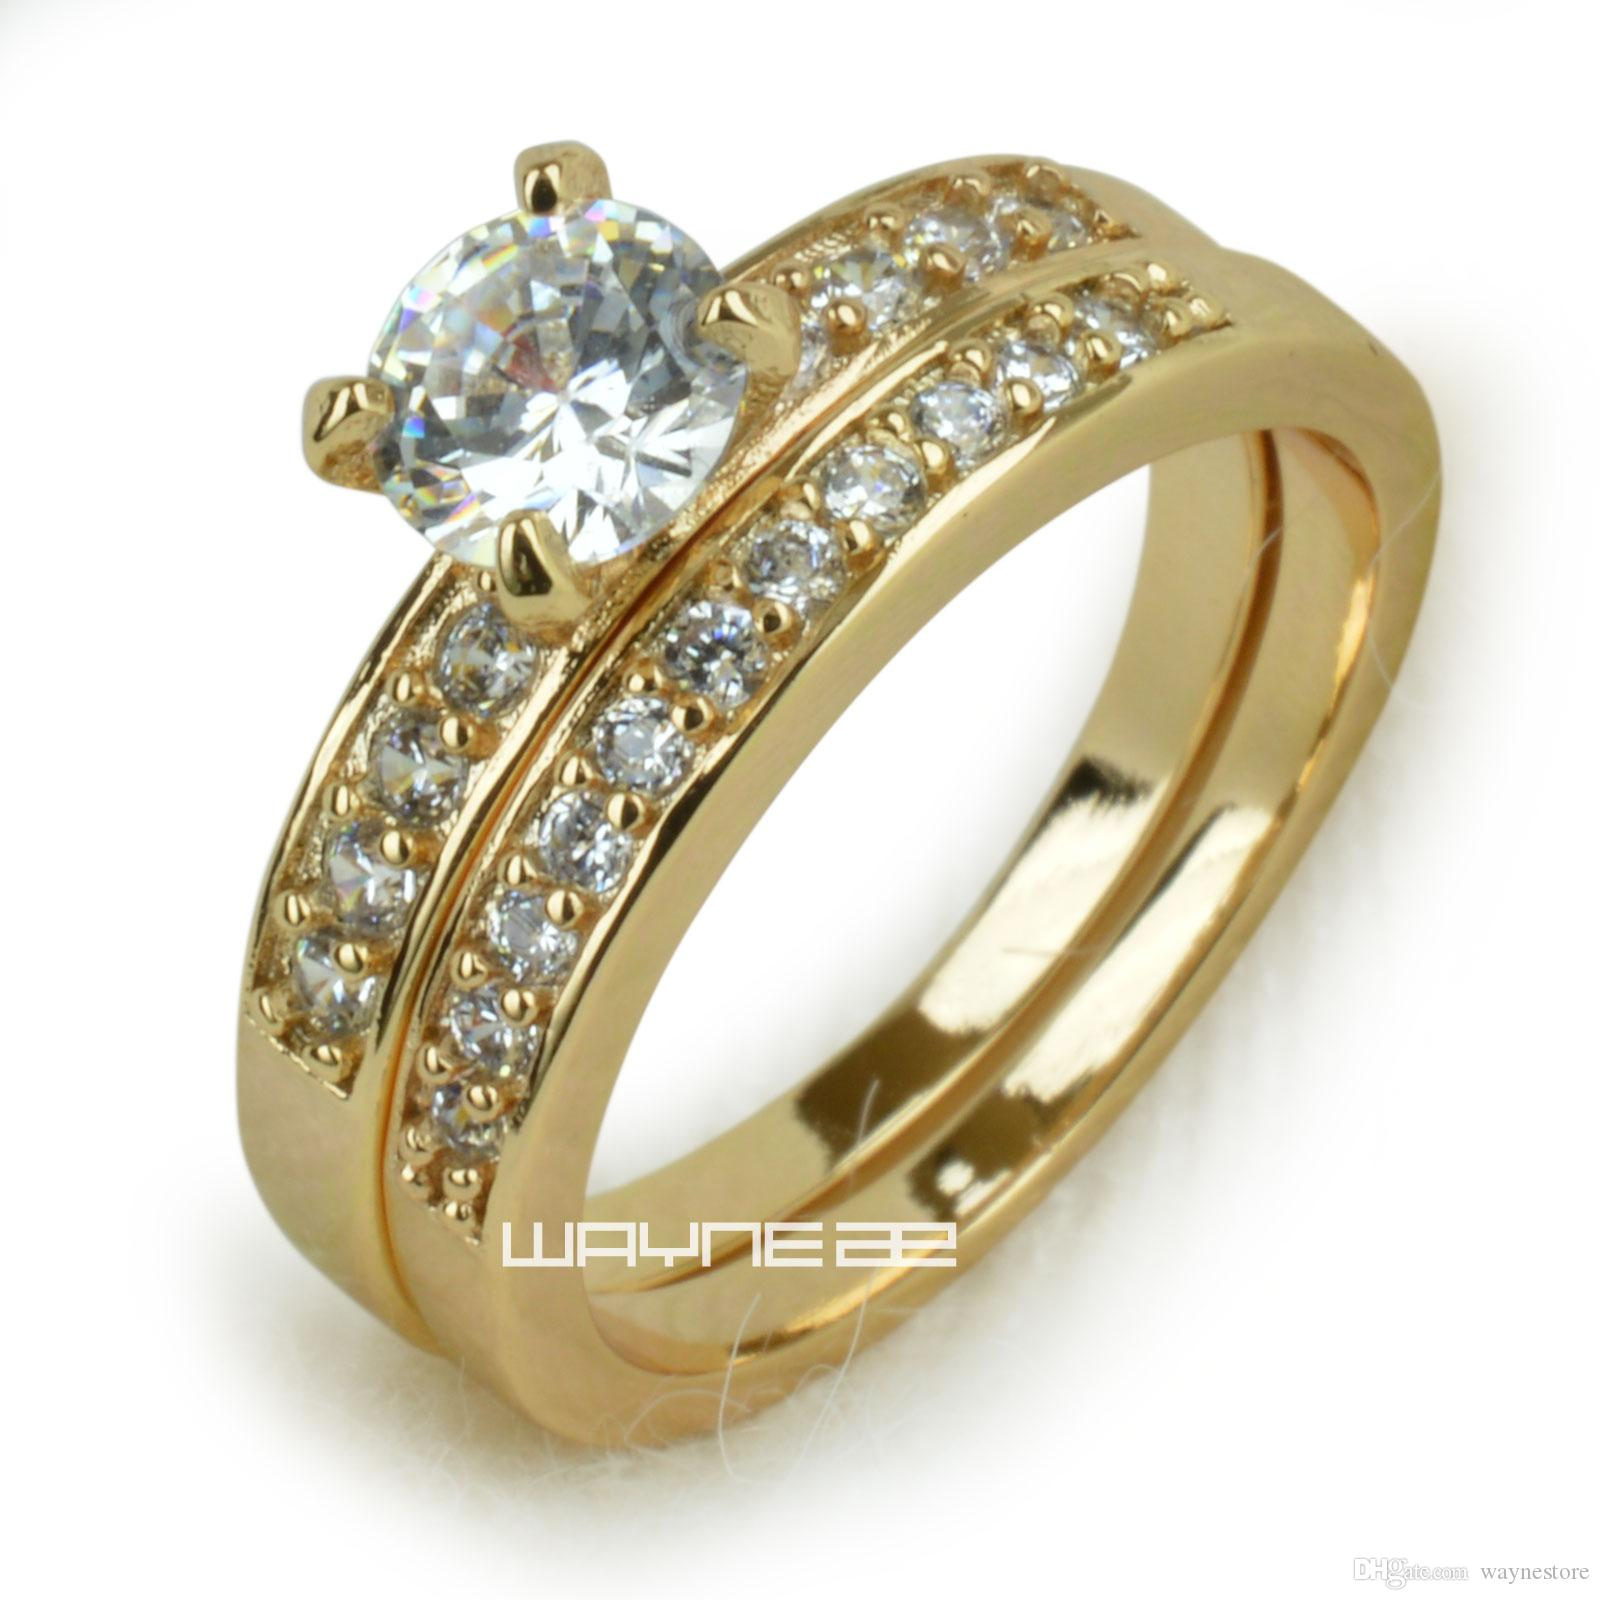 who platinum choose wedding sets obniiis band ring nice bands com you for jewelry designs looking of inspiration those